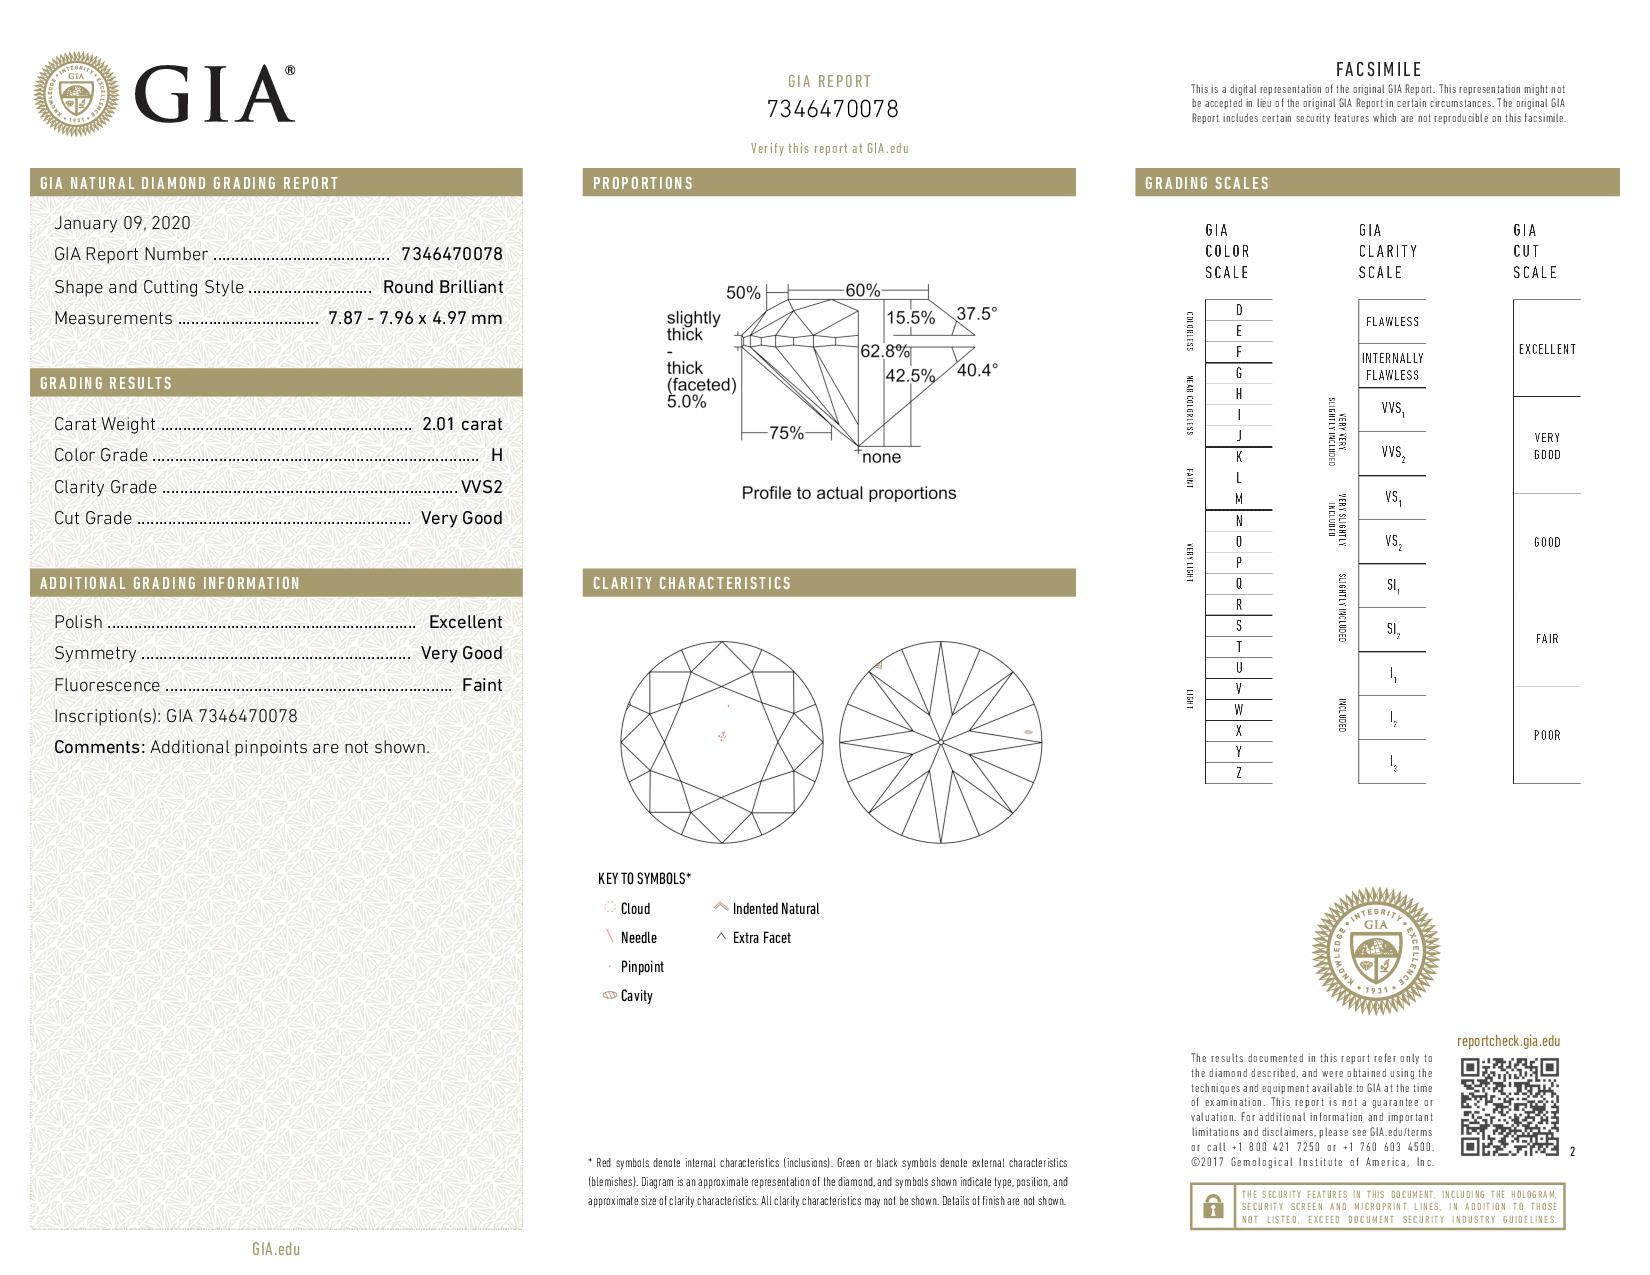 This is a 2.01 carat round shape, H color, VVS2 clarity natural diamond accompanied by a GIA grading report.